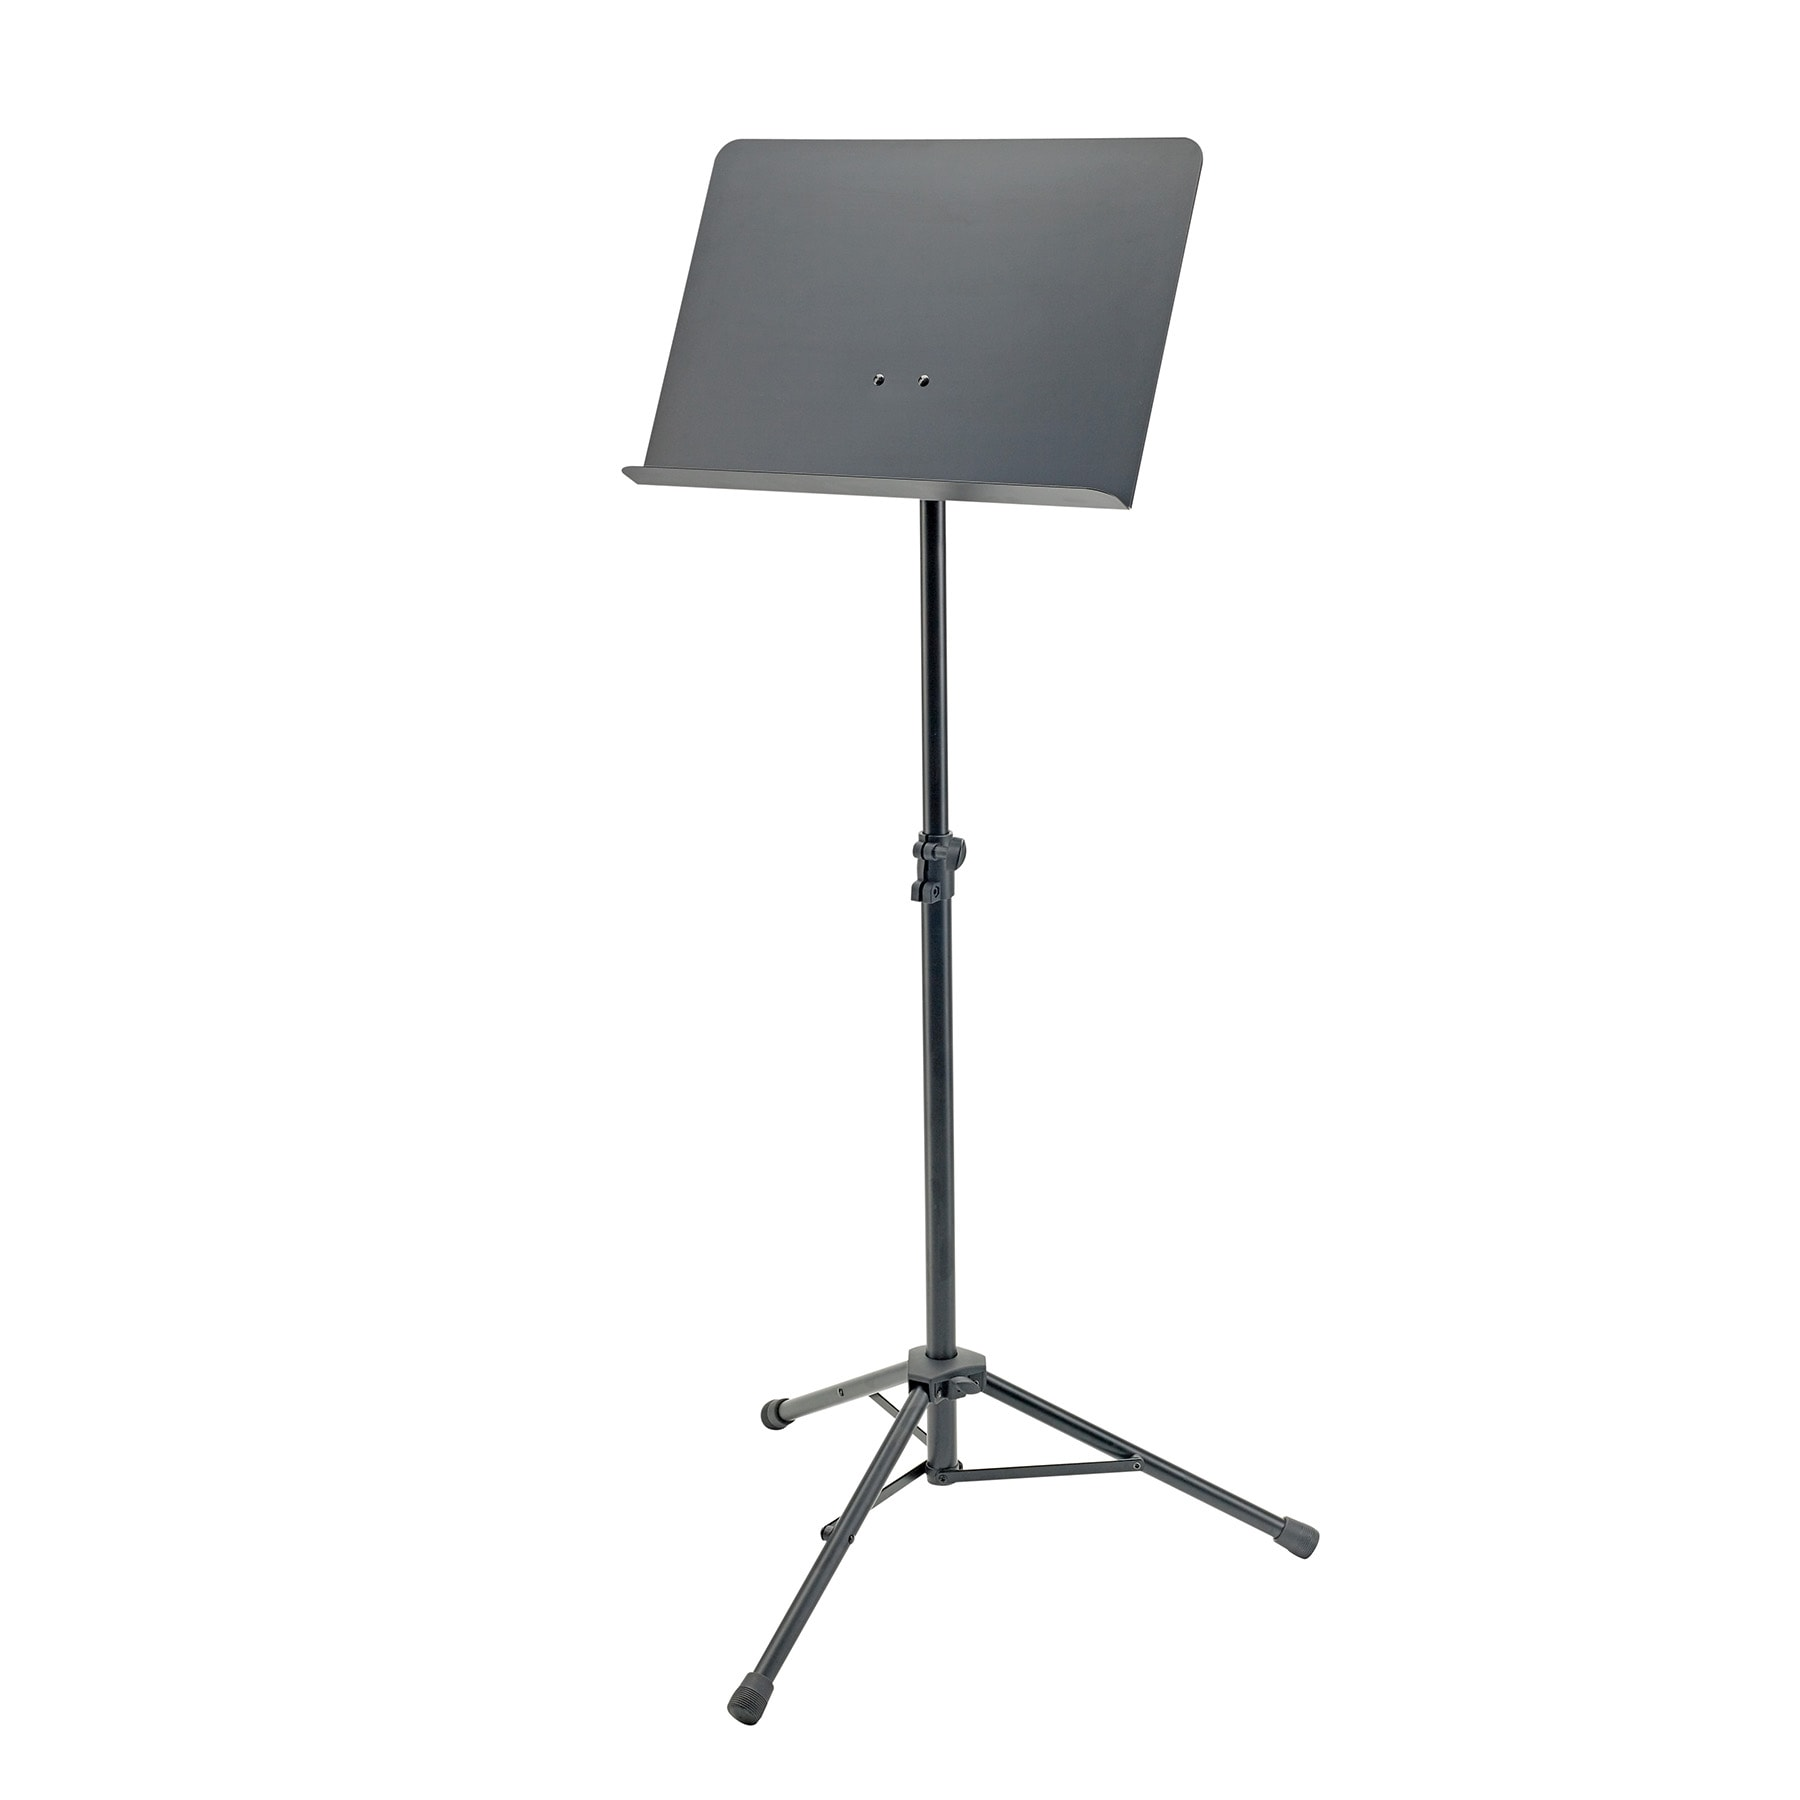 KM11960 - Orchestra music stand